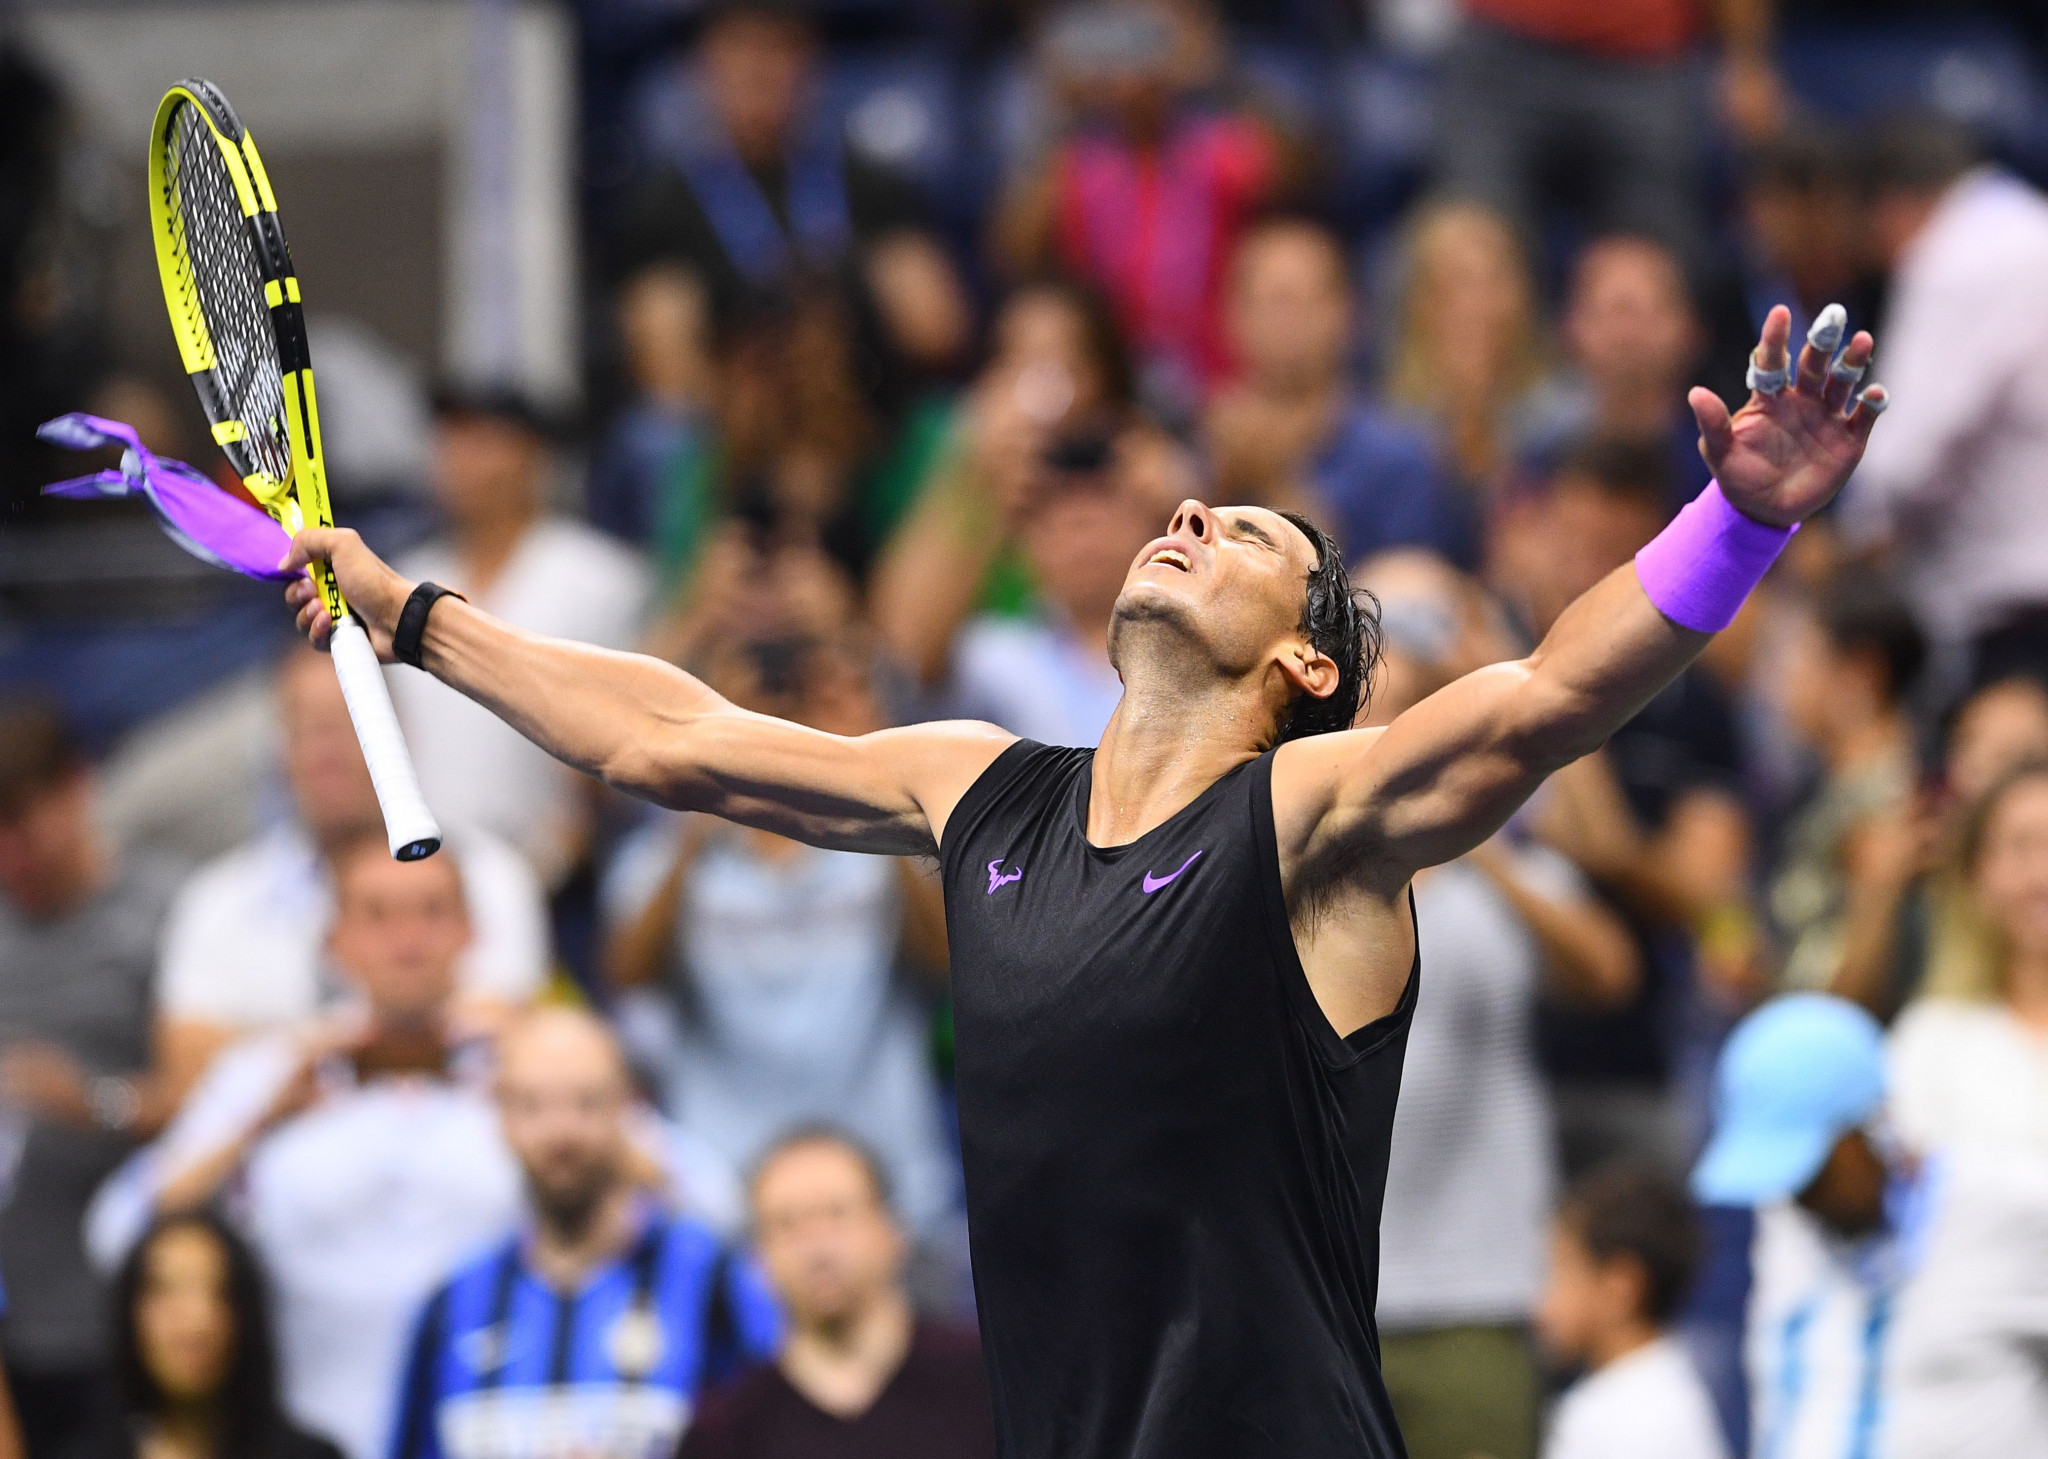 Nadal beats Schwartzman in straight sets to remain on track for fourth US Open